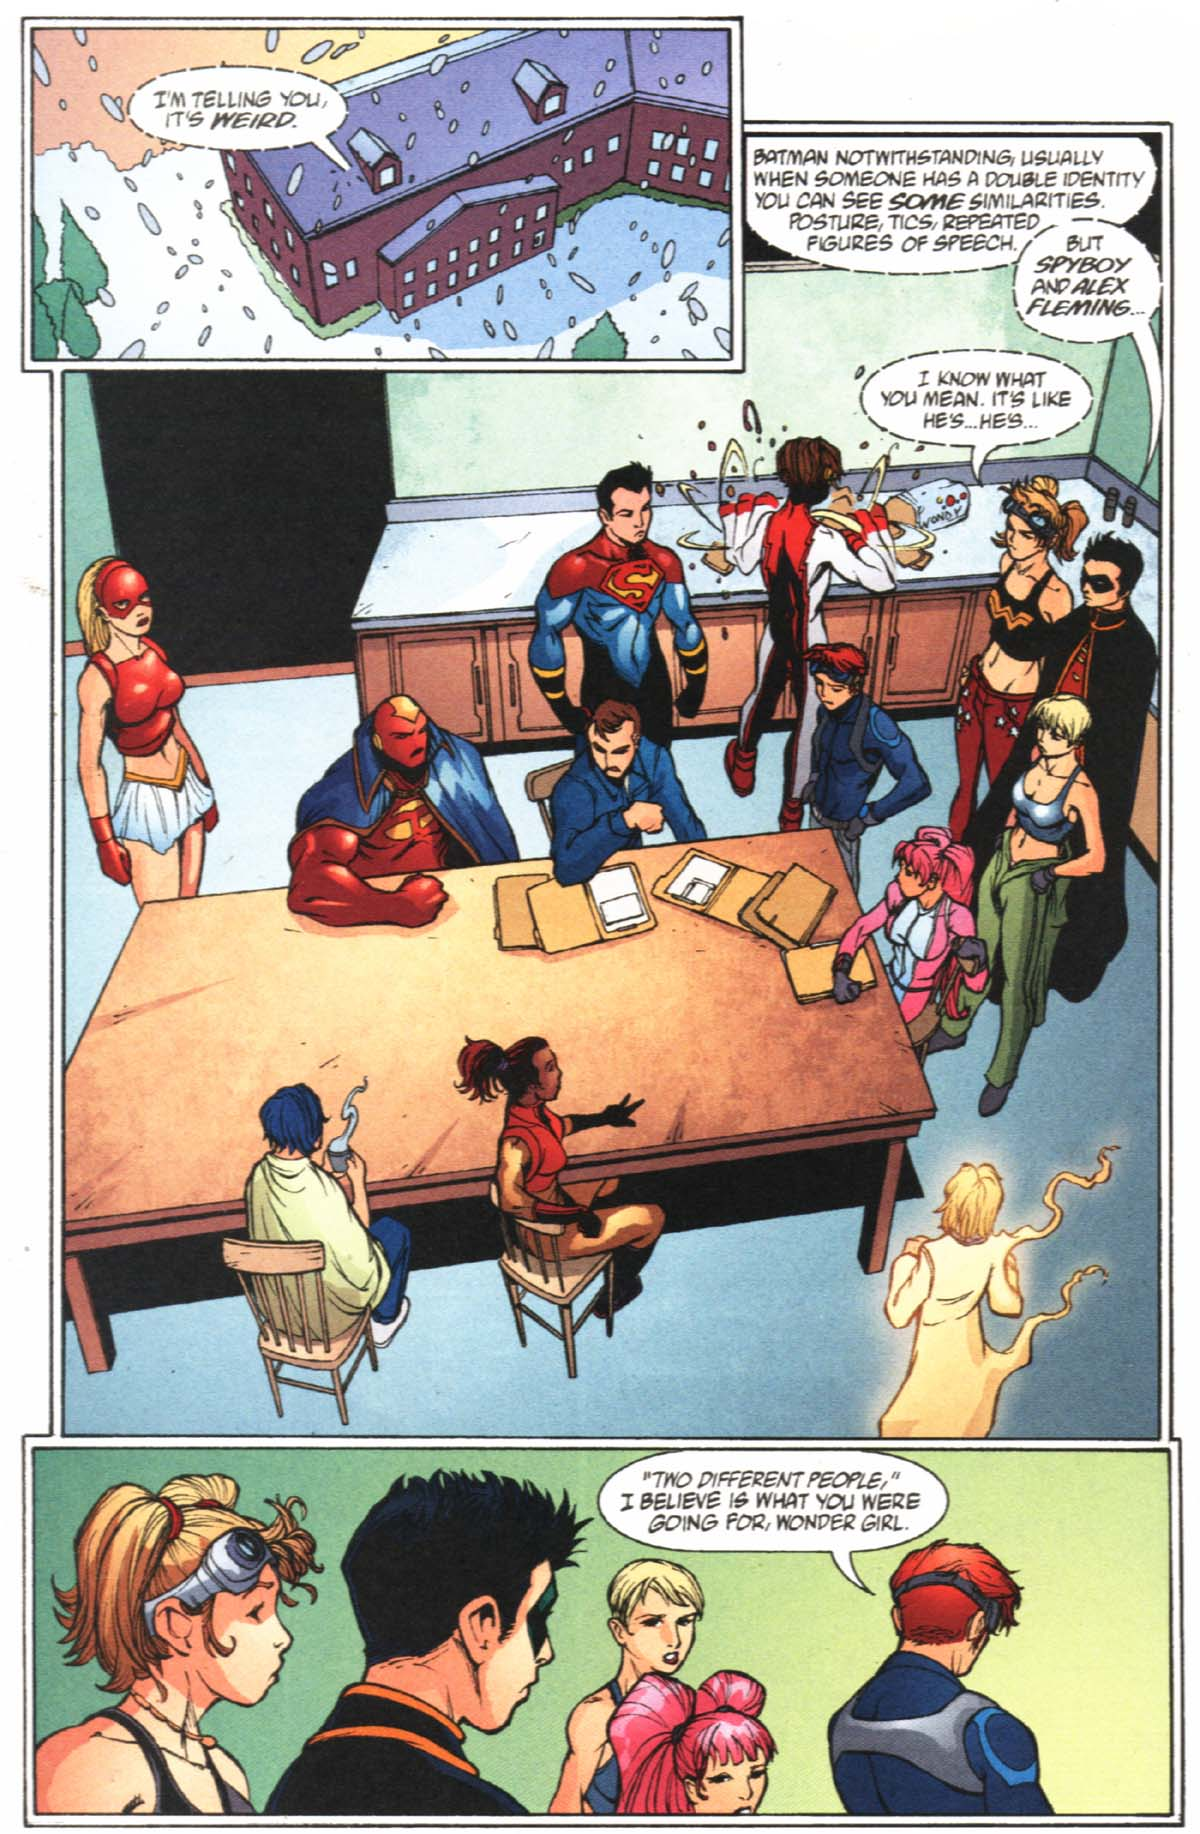 Read online SpyBoy/Young Justice comic -  Issue #2 - 17